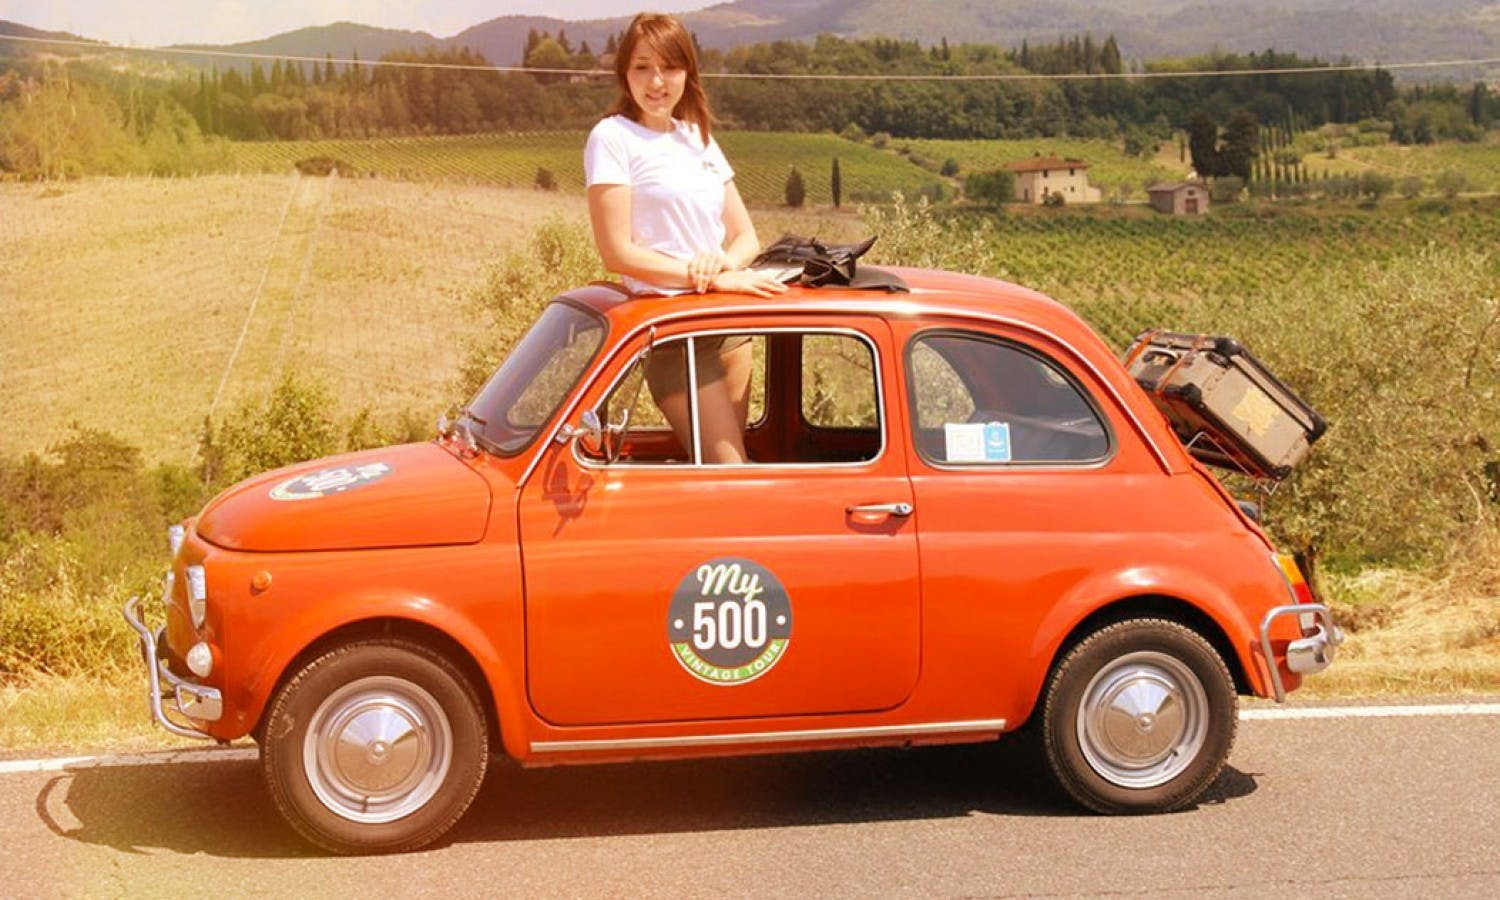 Chianti: Vintage Tour on a Fiat 500 with Lunch and Visit to a Winery